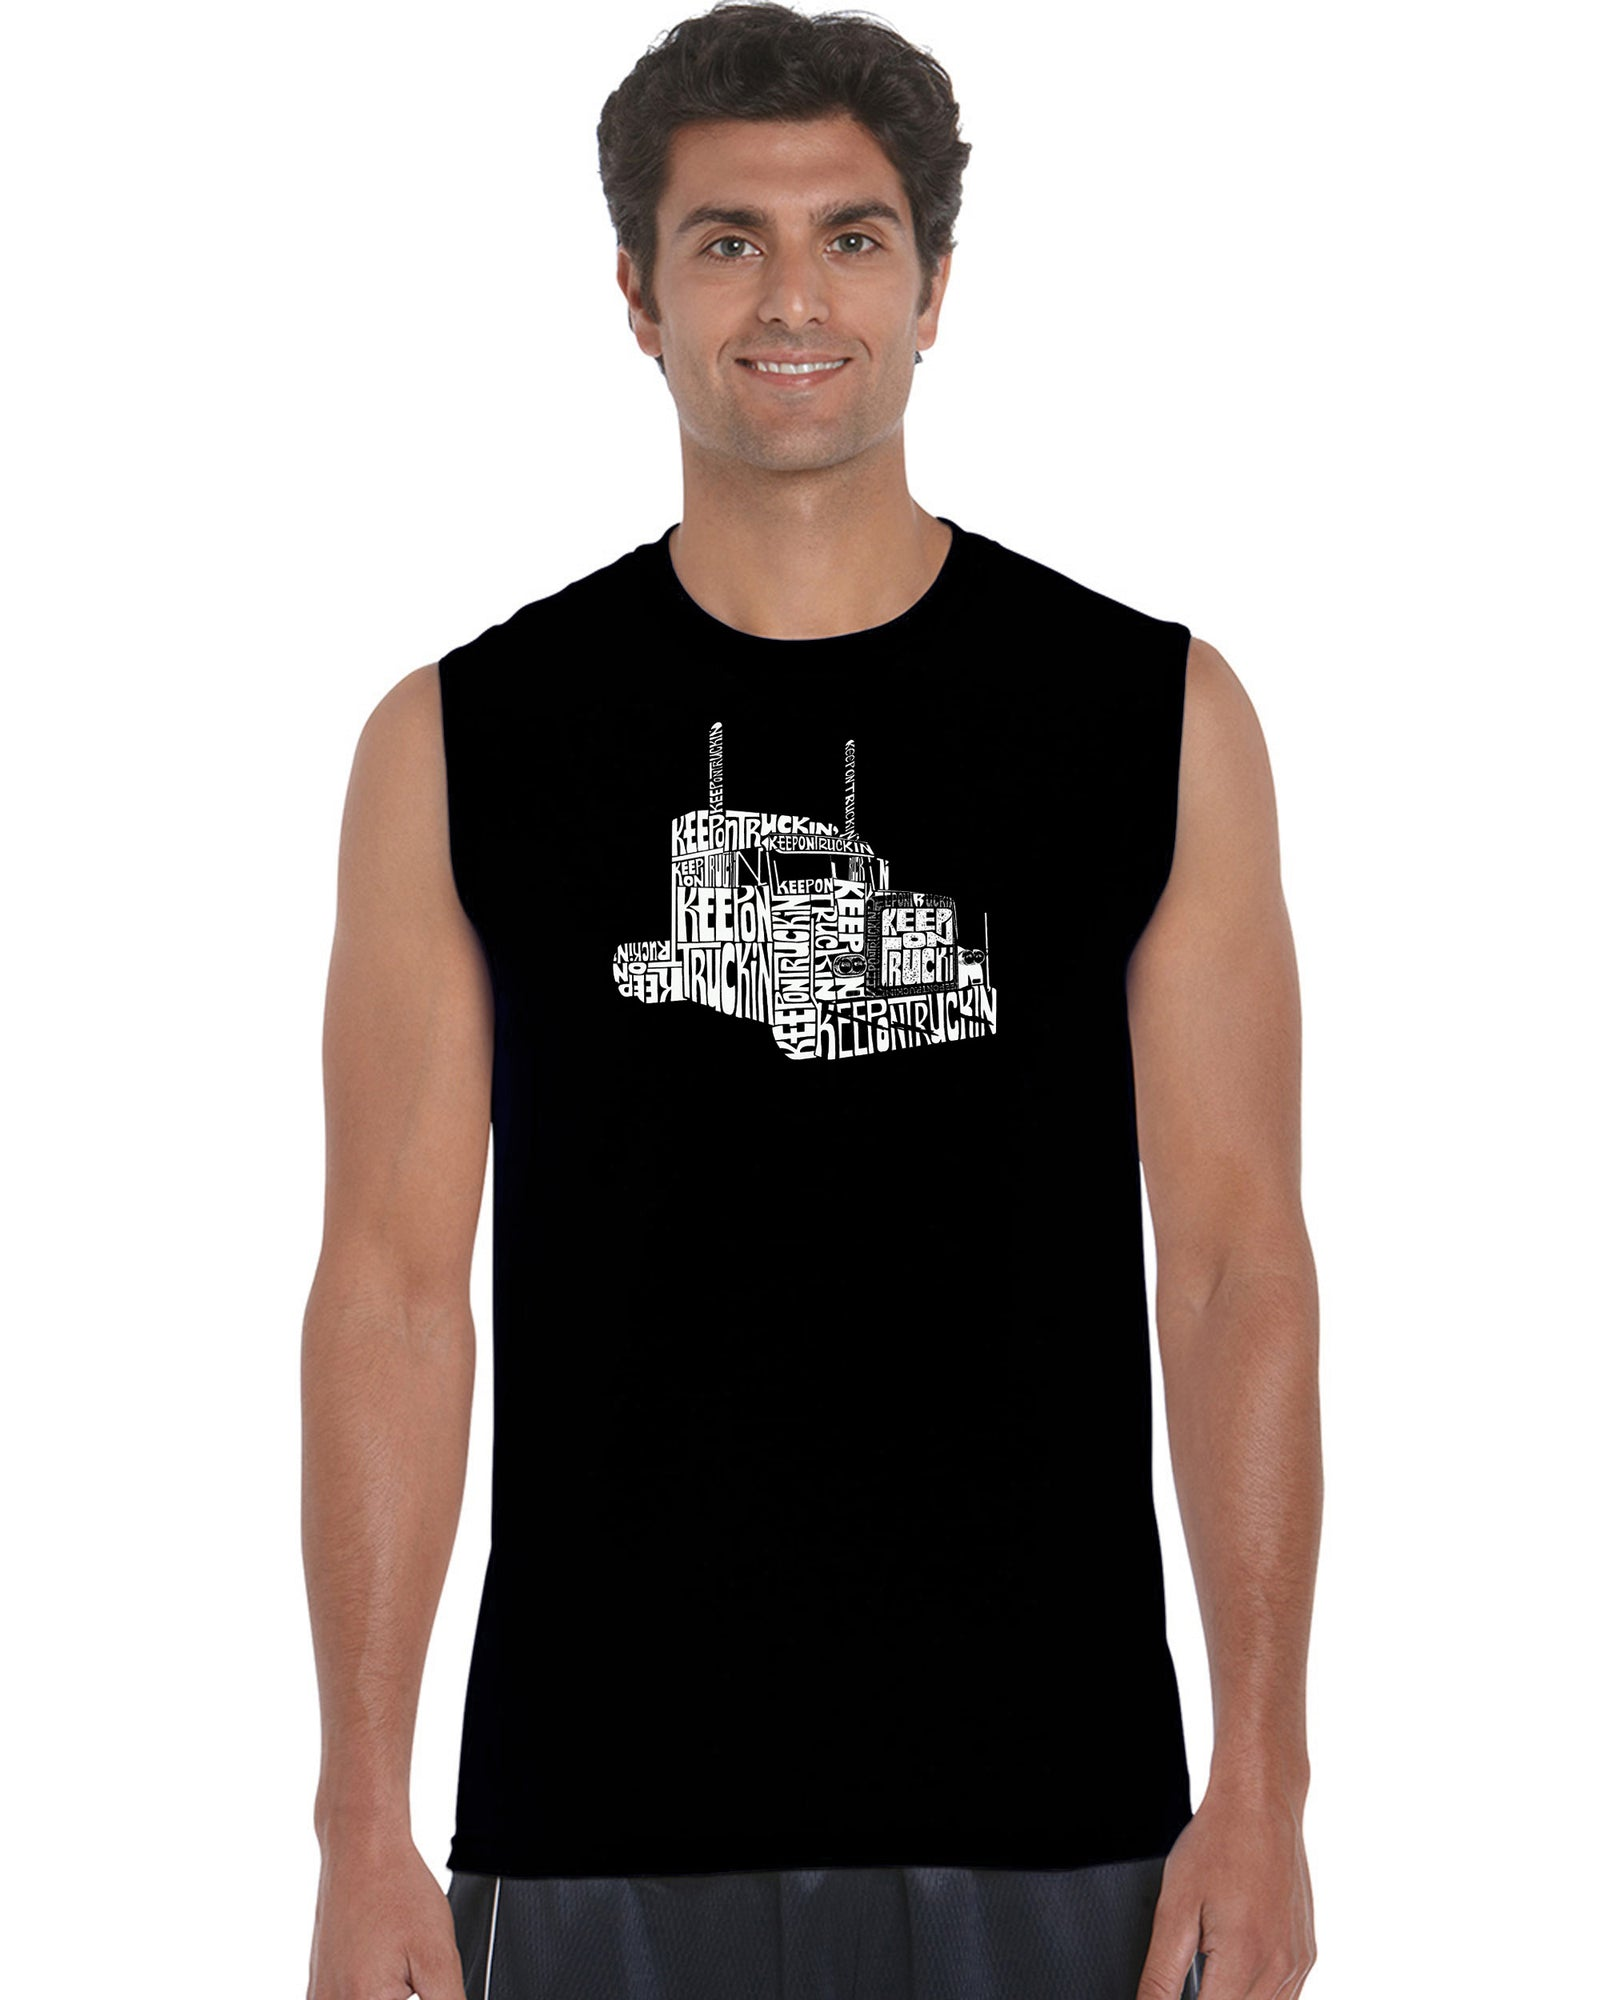 Men's Sleeveless T-shirt - KEEP ON TRUCKIN'